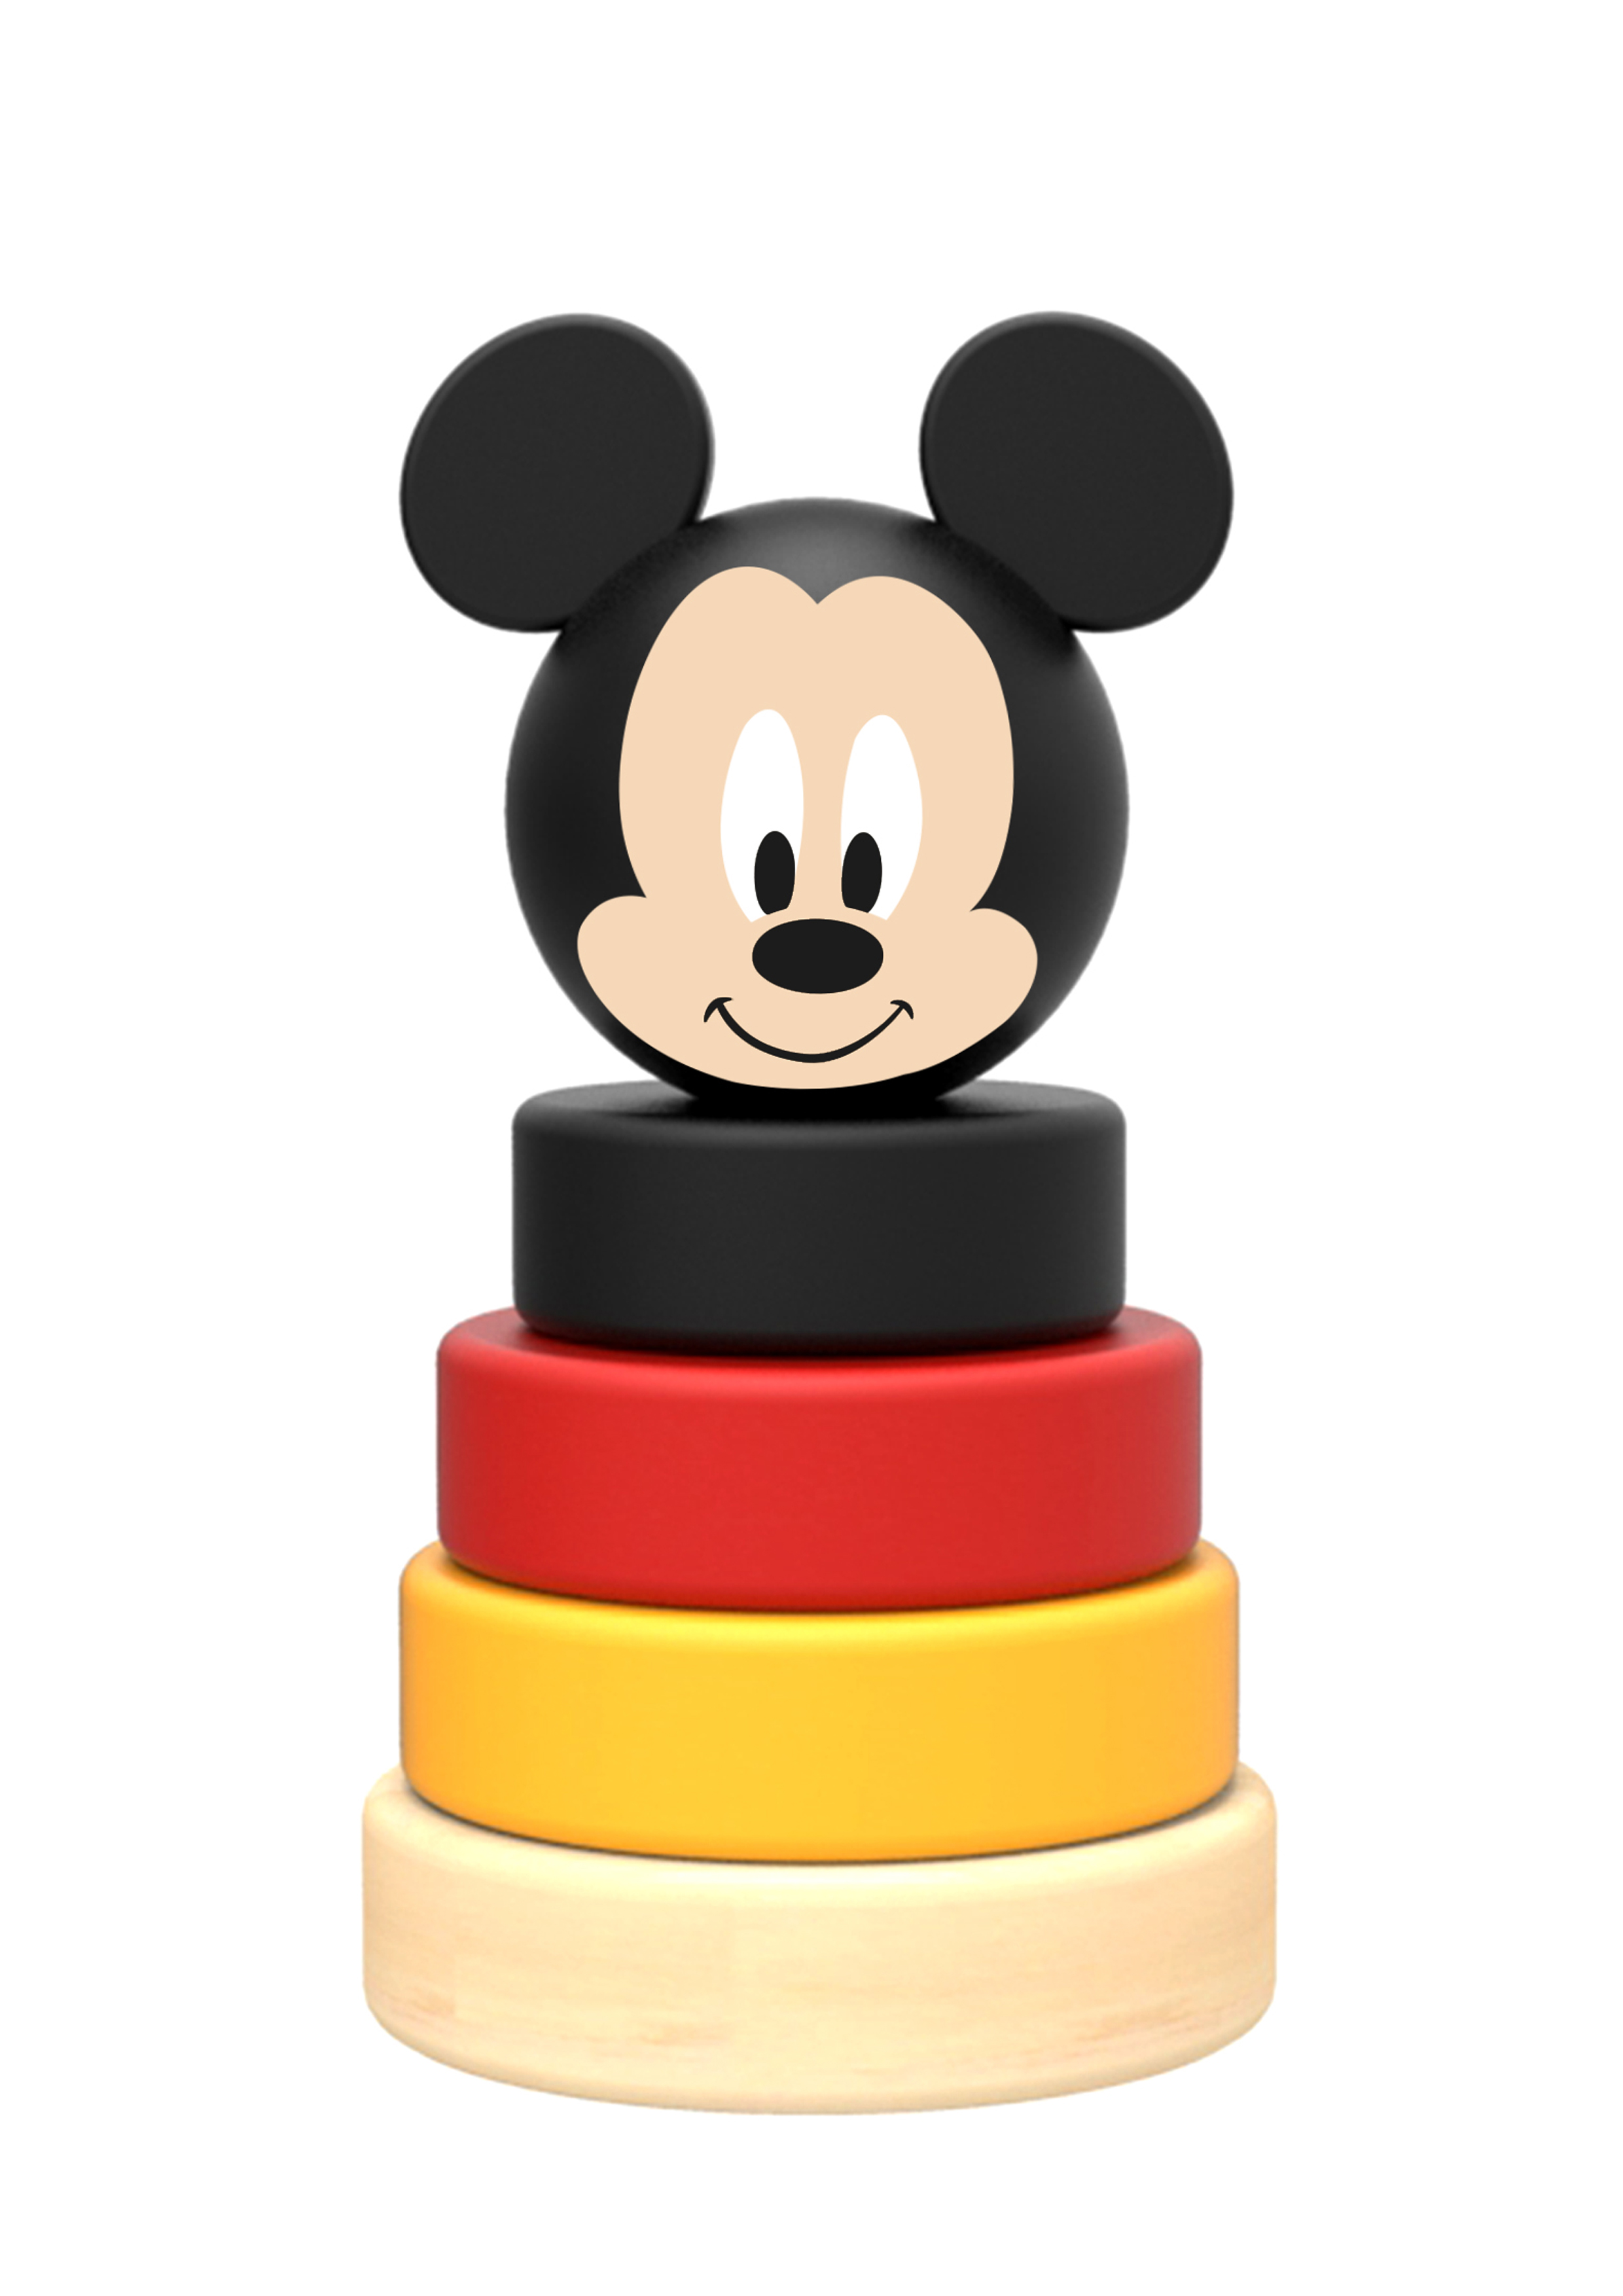 Mini piramida de stivuit inele din lemn si mickey,disney imagine